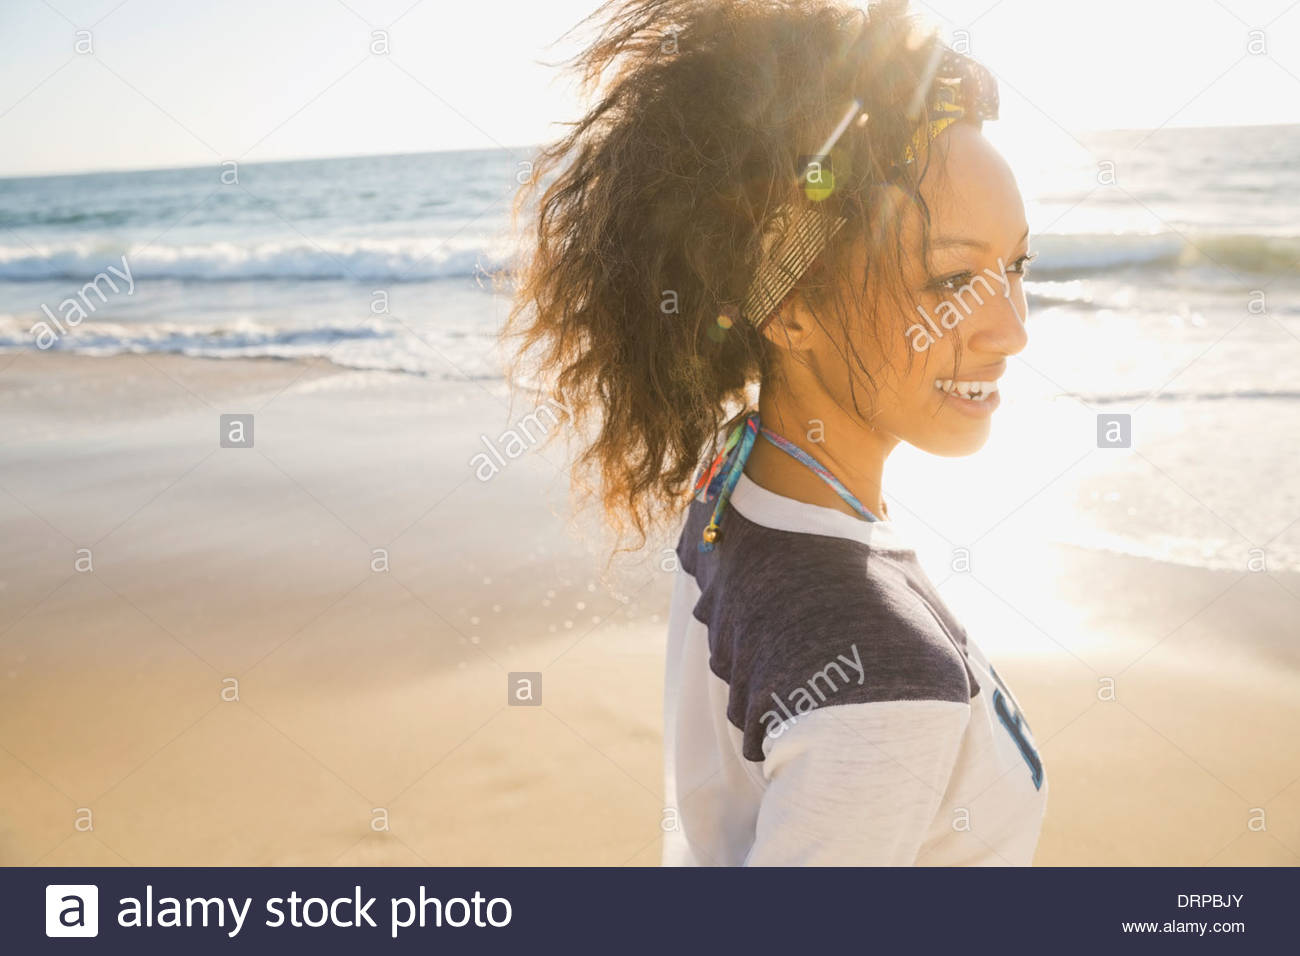 Woman spending leisure time at beach Stock Photo